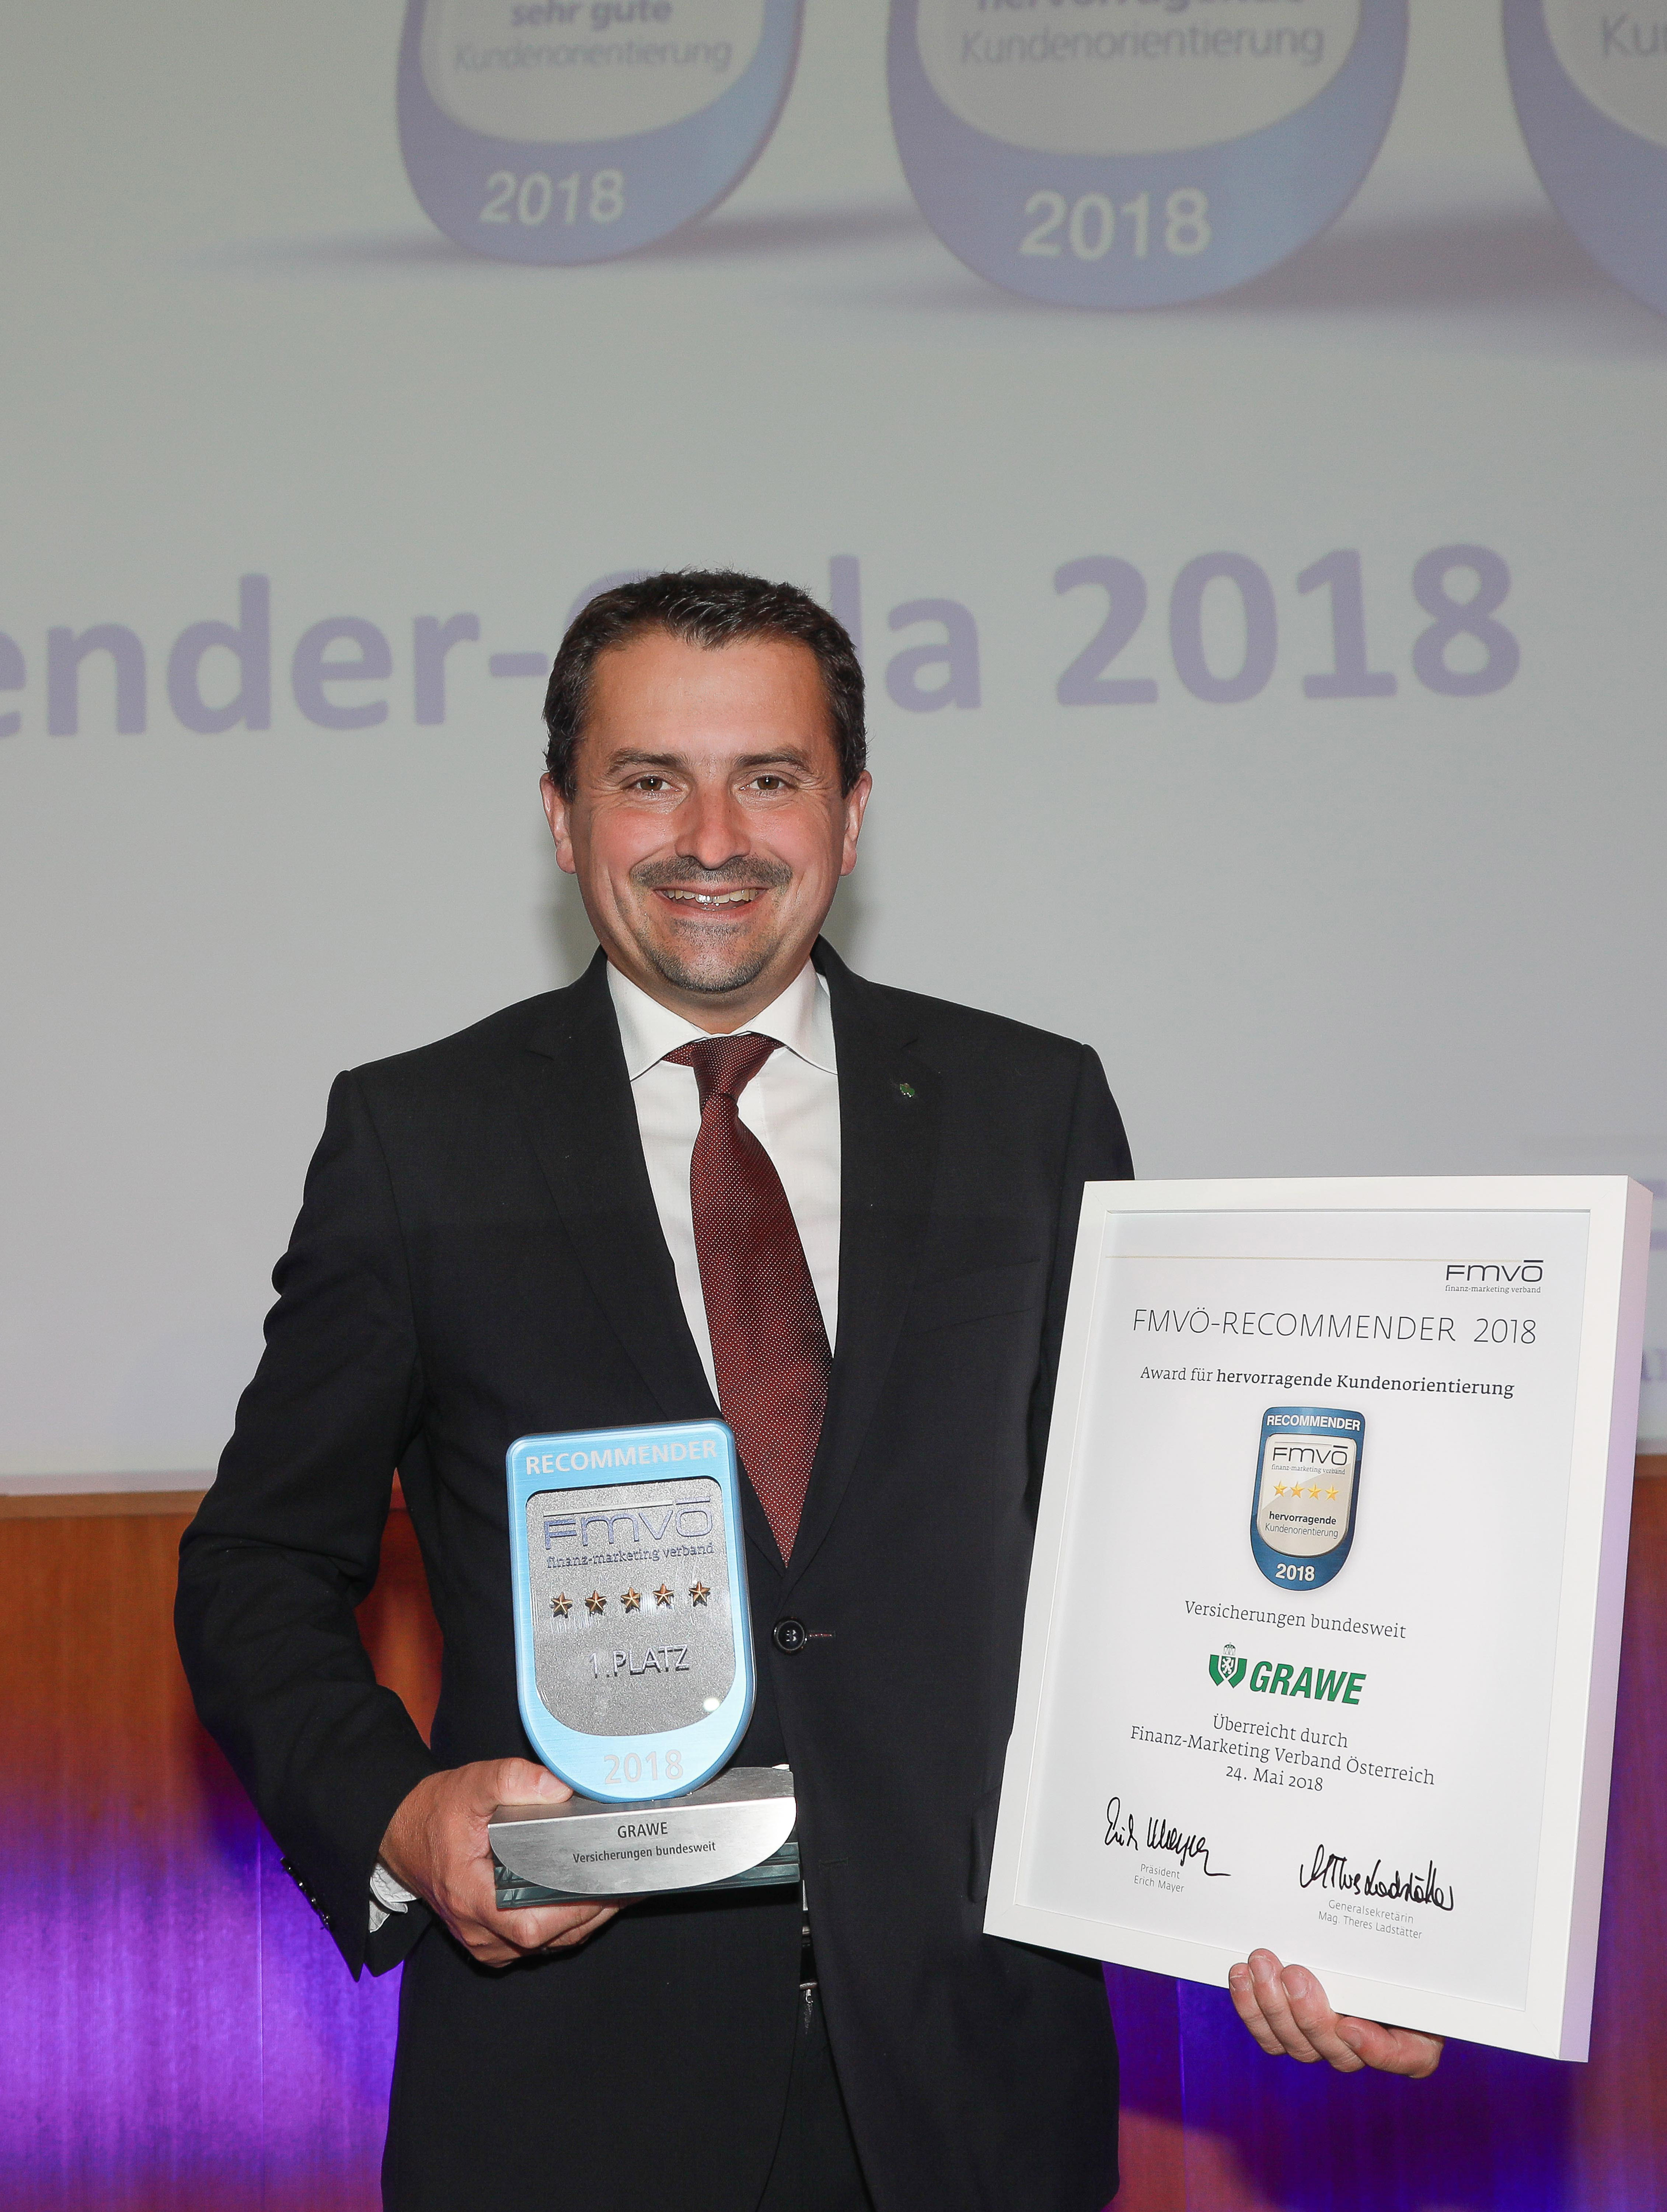 MMag. Georg Schneider receiving the Recommender Award 2018